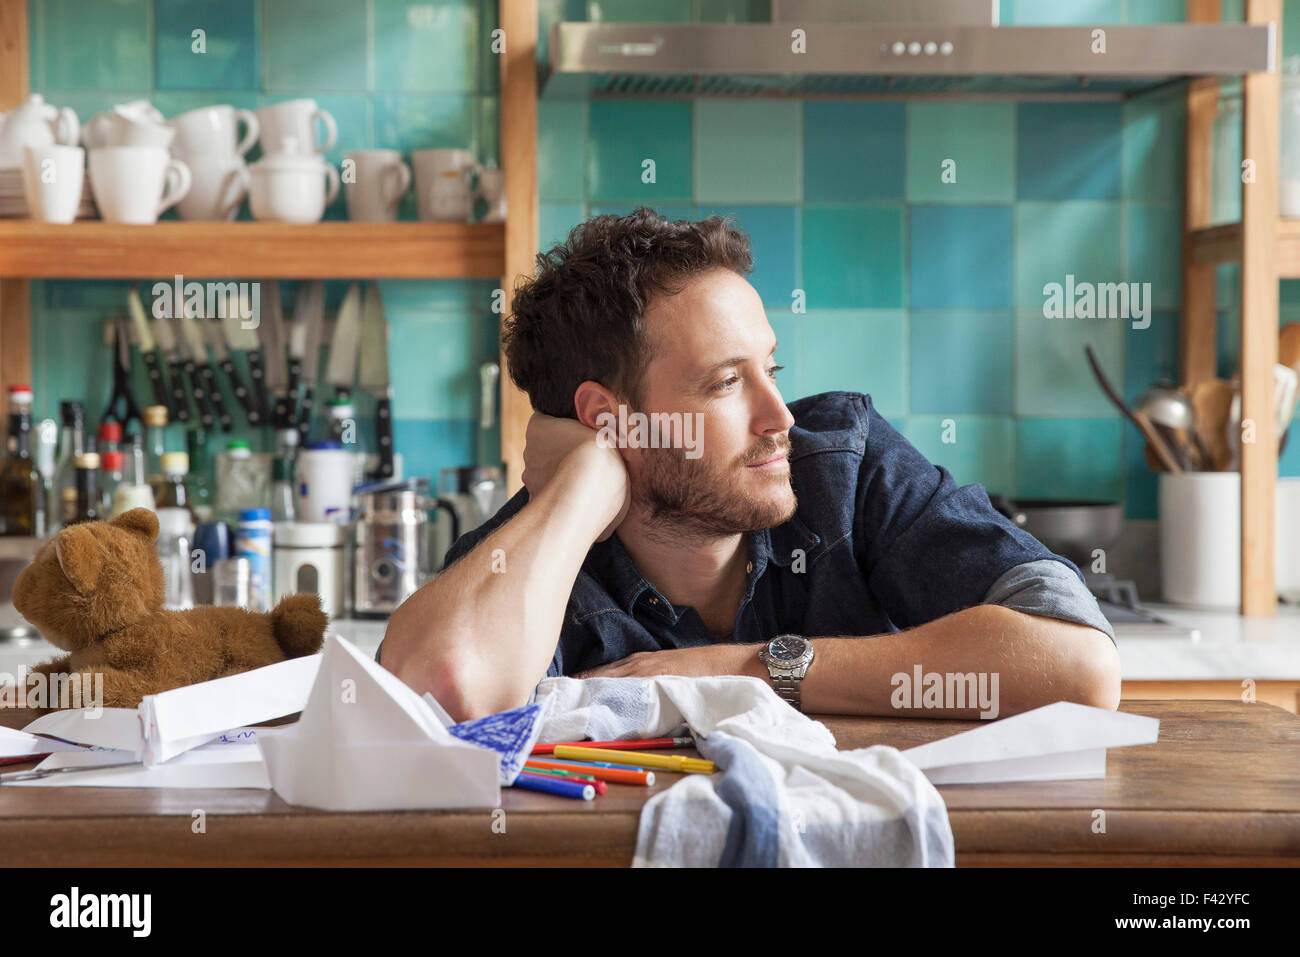 Man daydreaming in kitchen - Stock Image